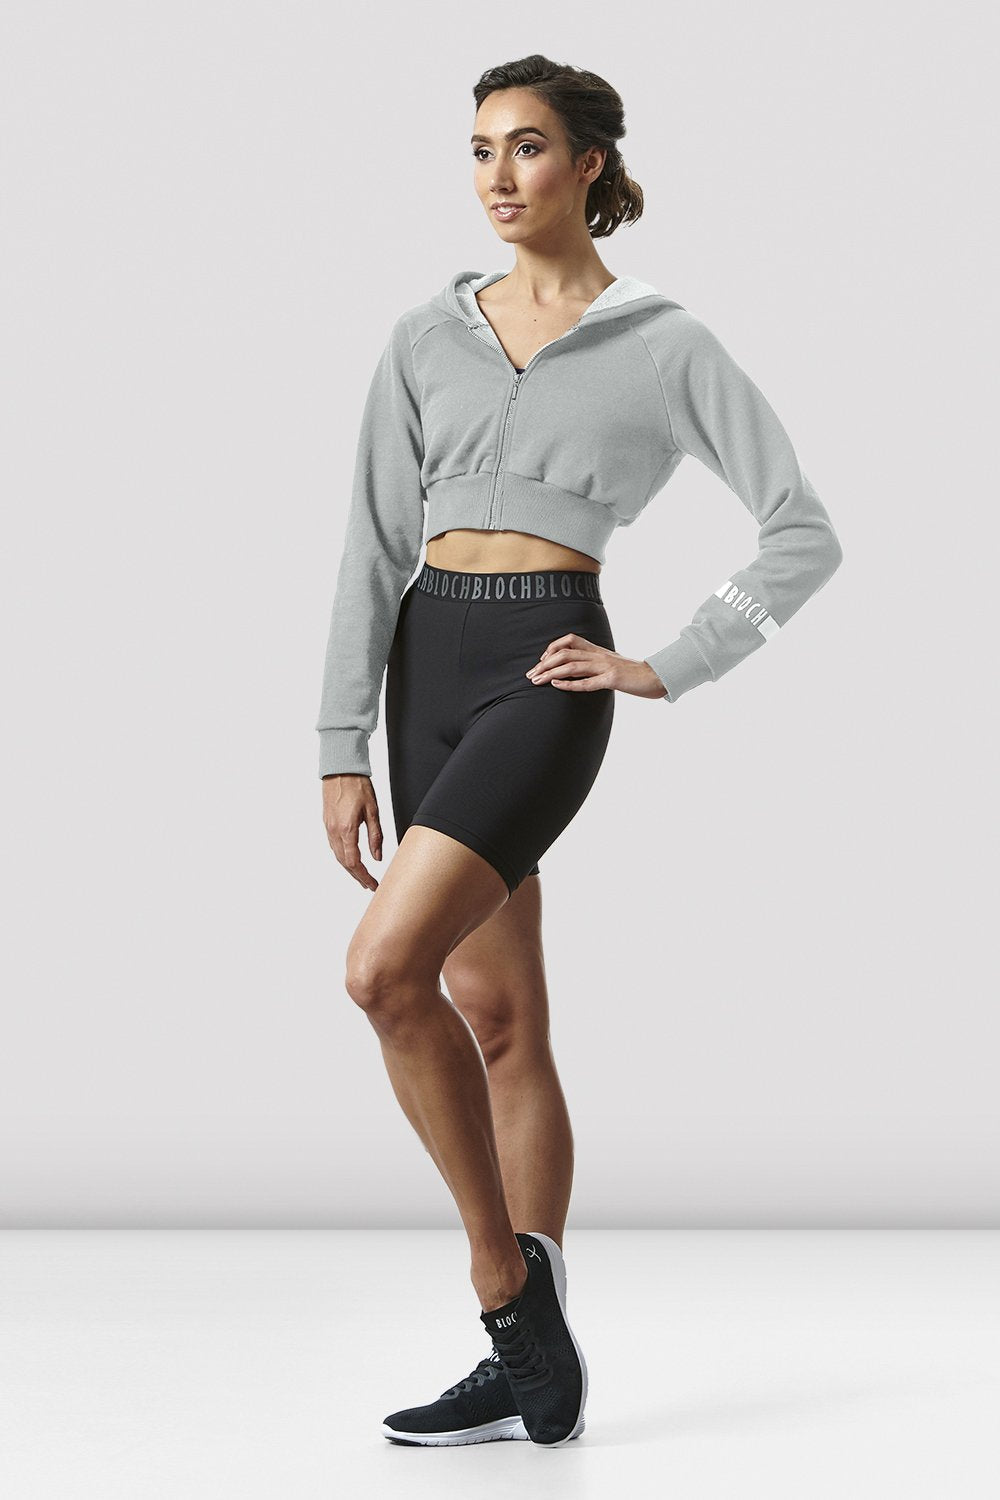 Ladies Logo Waist Bike Short - BLOCH US